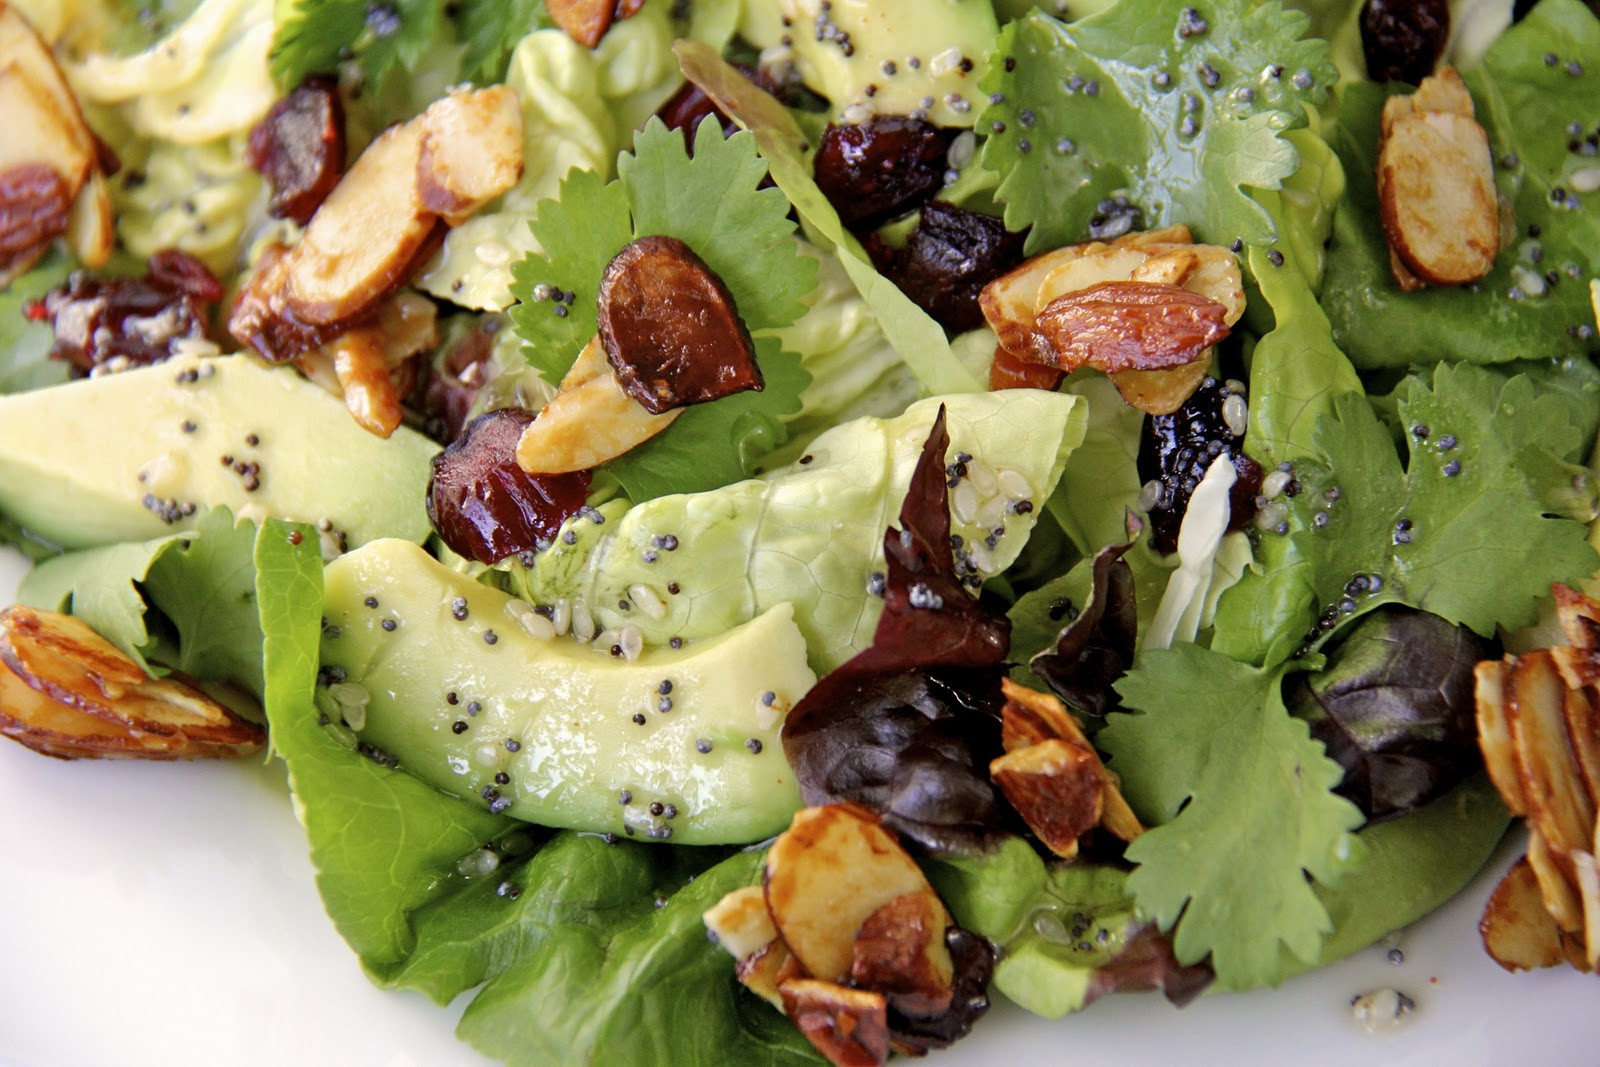 Healthy Lunch Salads  Healthy Lunch Salad Recipes to Take To Work